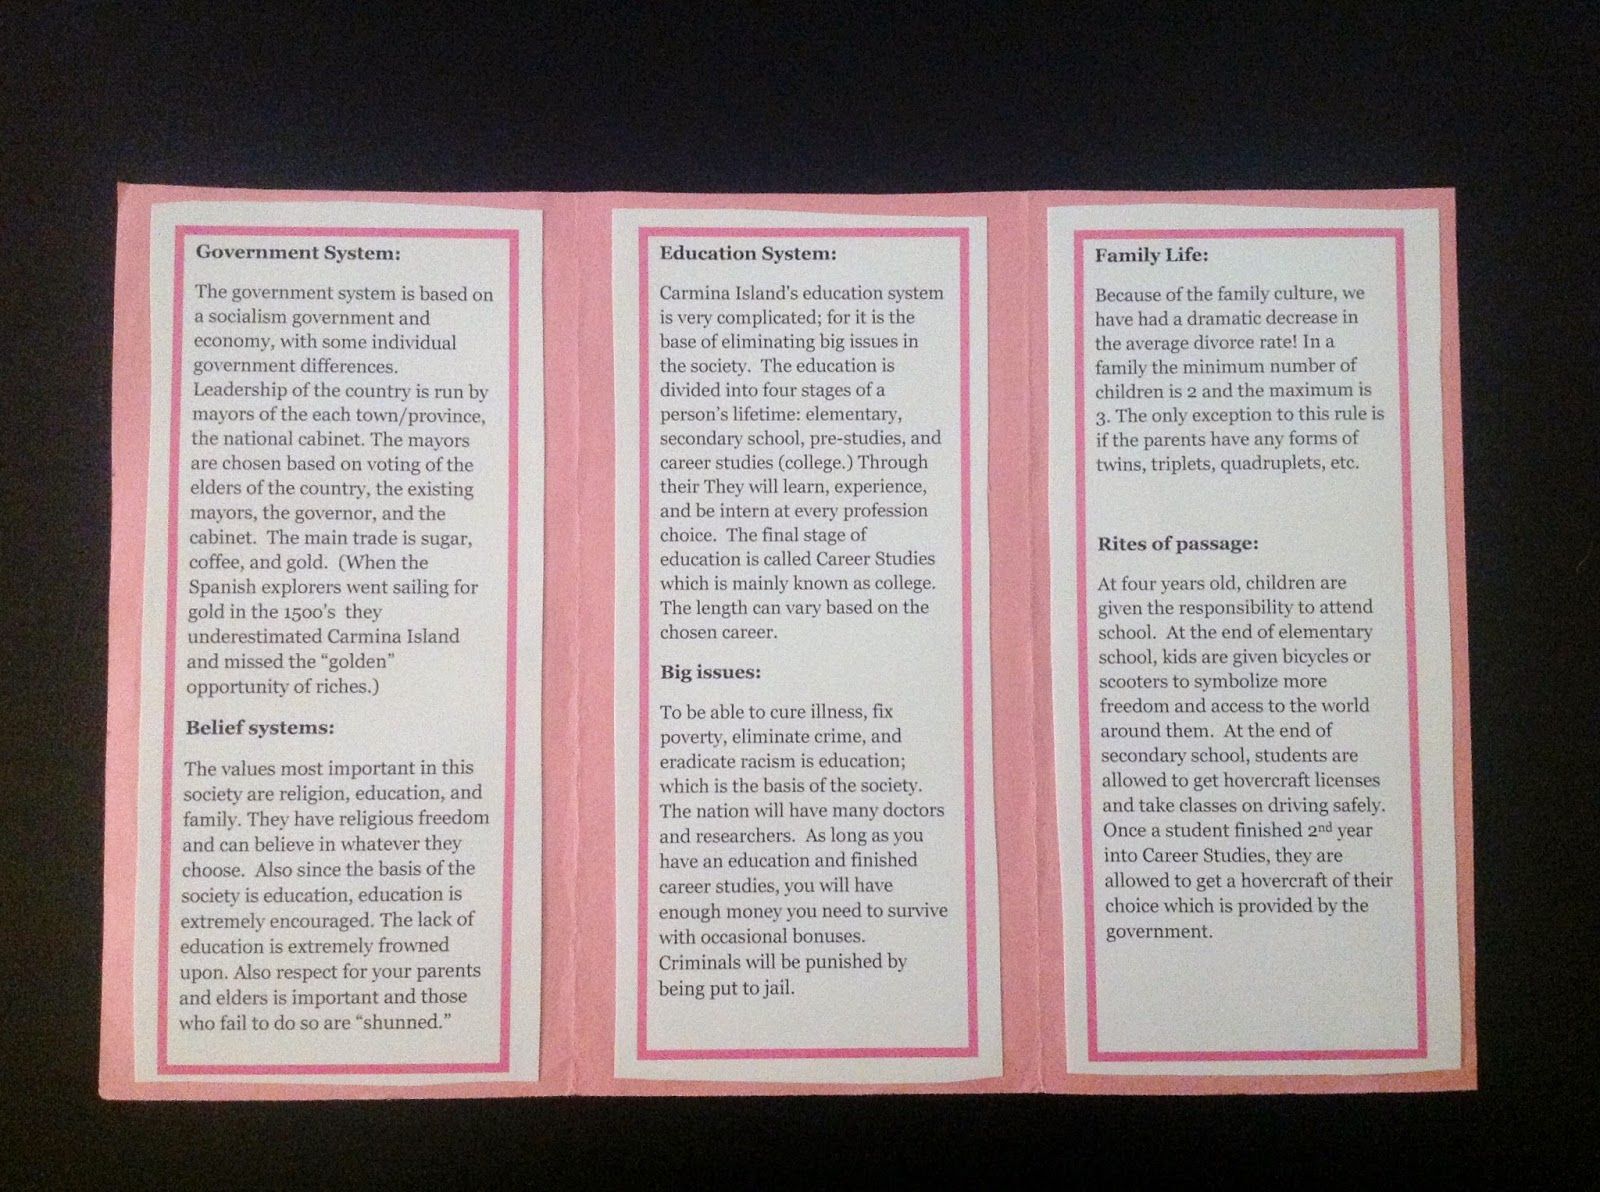 education and society essay You May Also Find These Documents Helpful